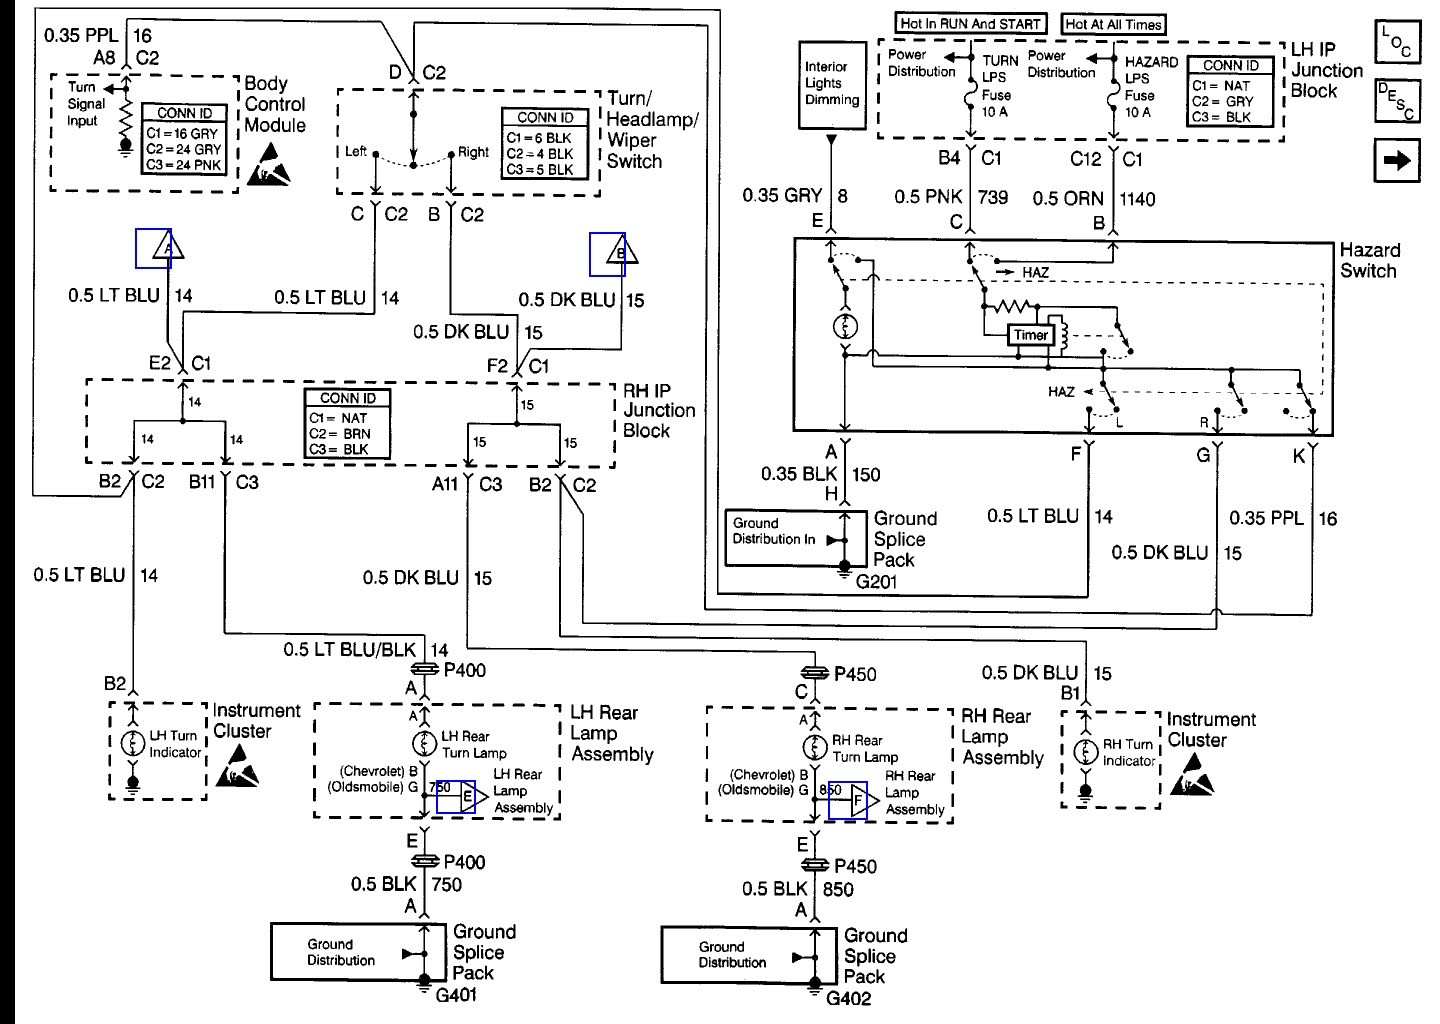 omron mk2p s wiring diagram - fuse box diagram moreover bmw wiring diagrams  further bmw 325i